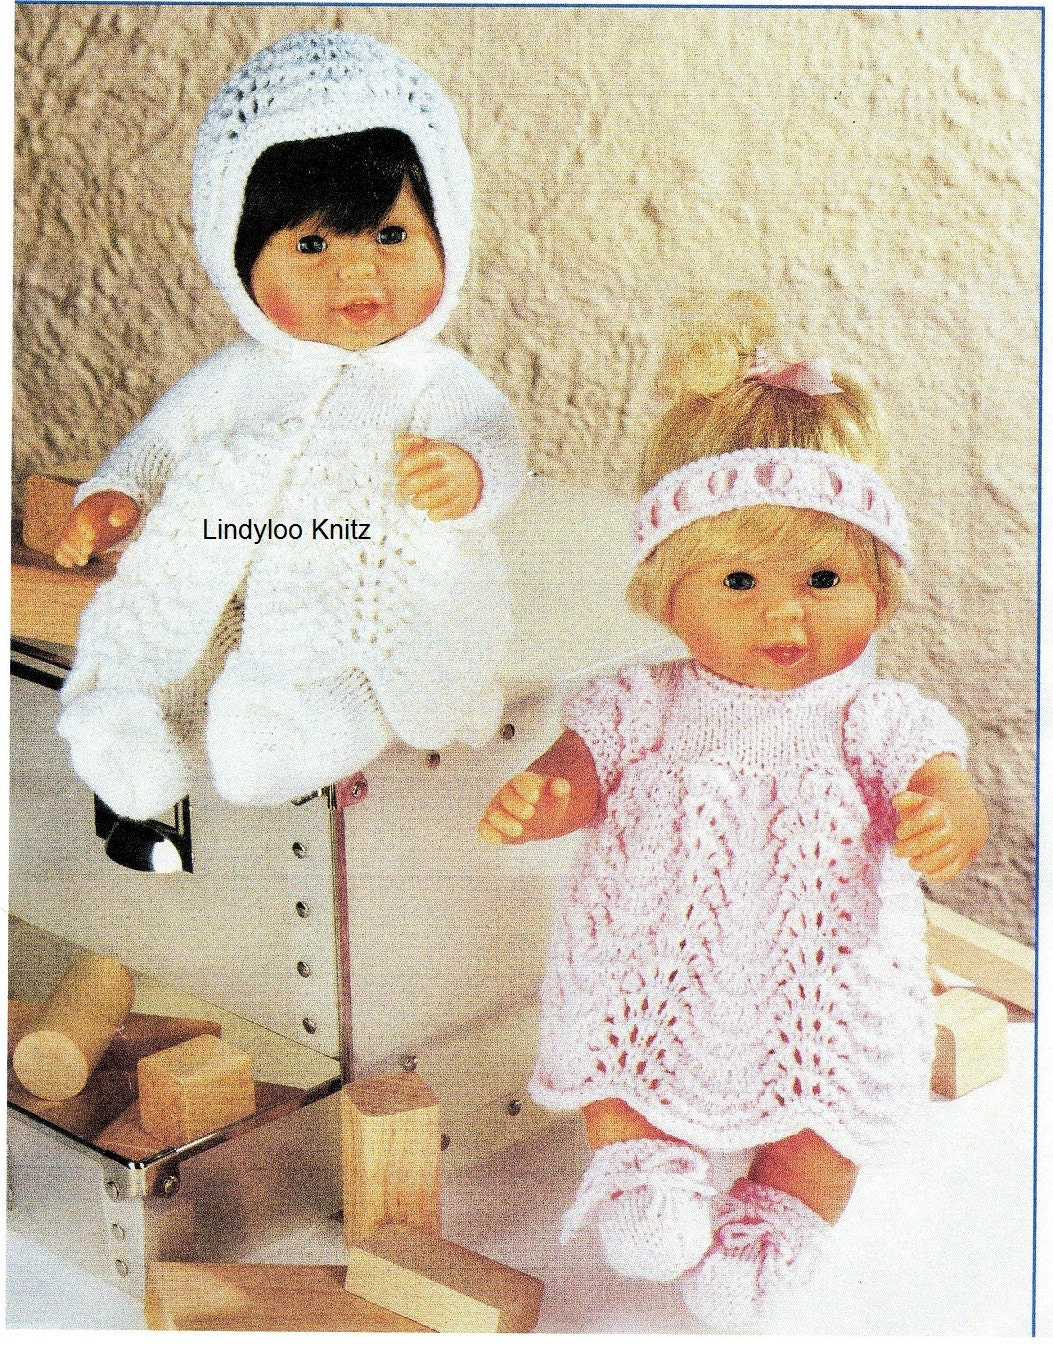 Knitting Patterns For Dolls Clothes 12 Inch : Item Details Reviews (5) Shop Policies